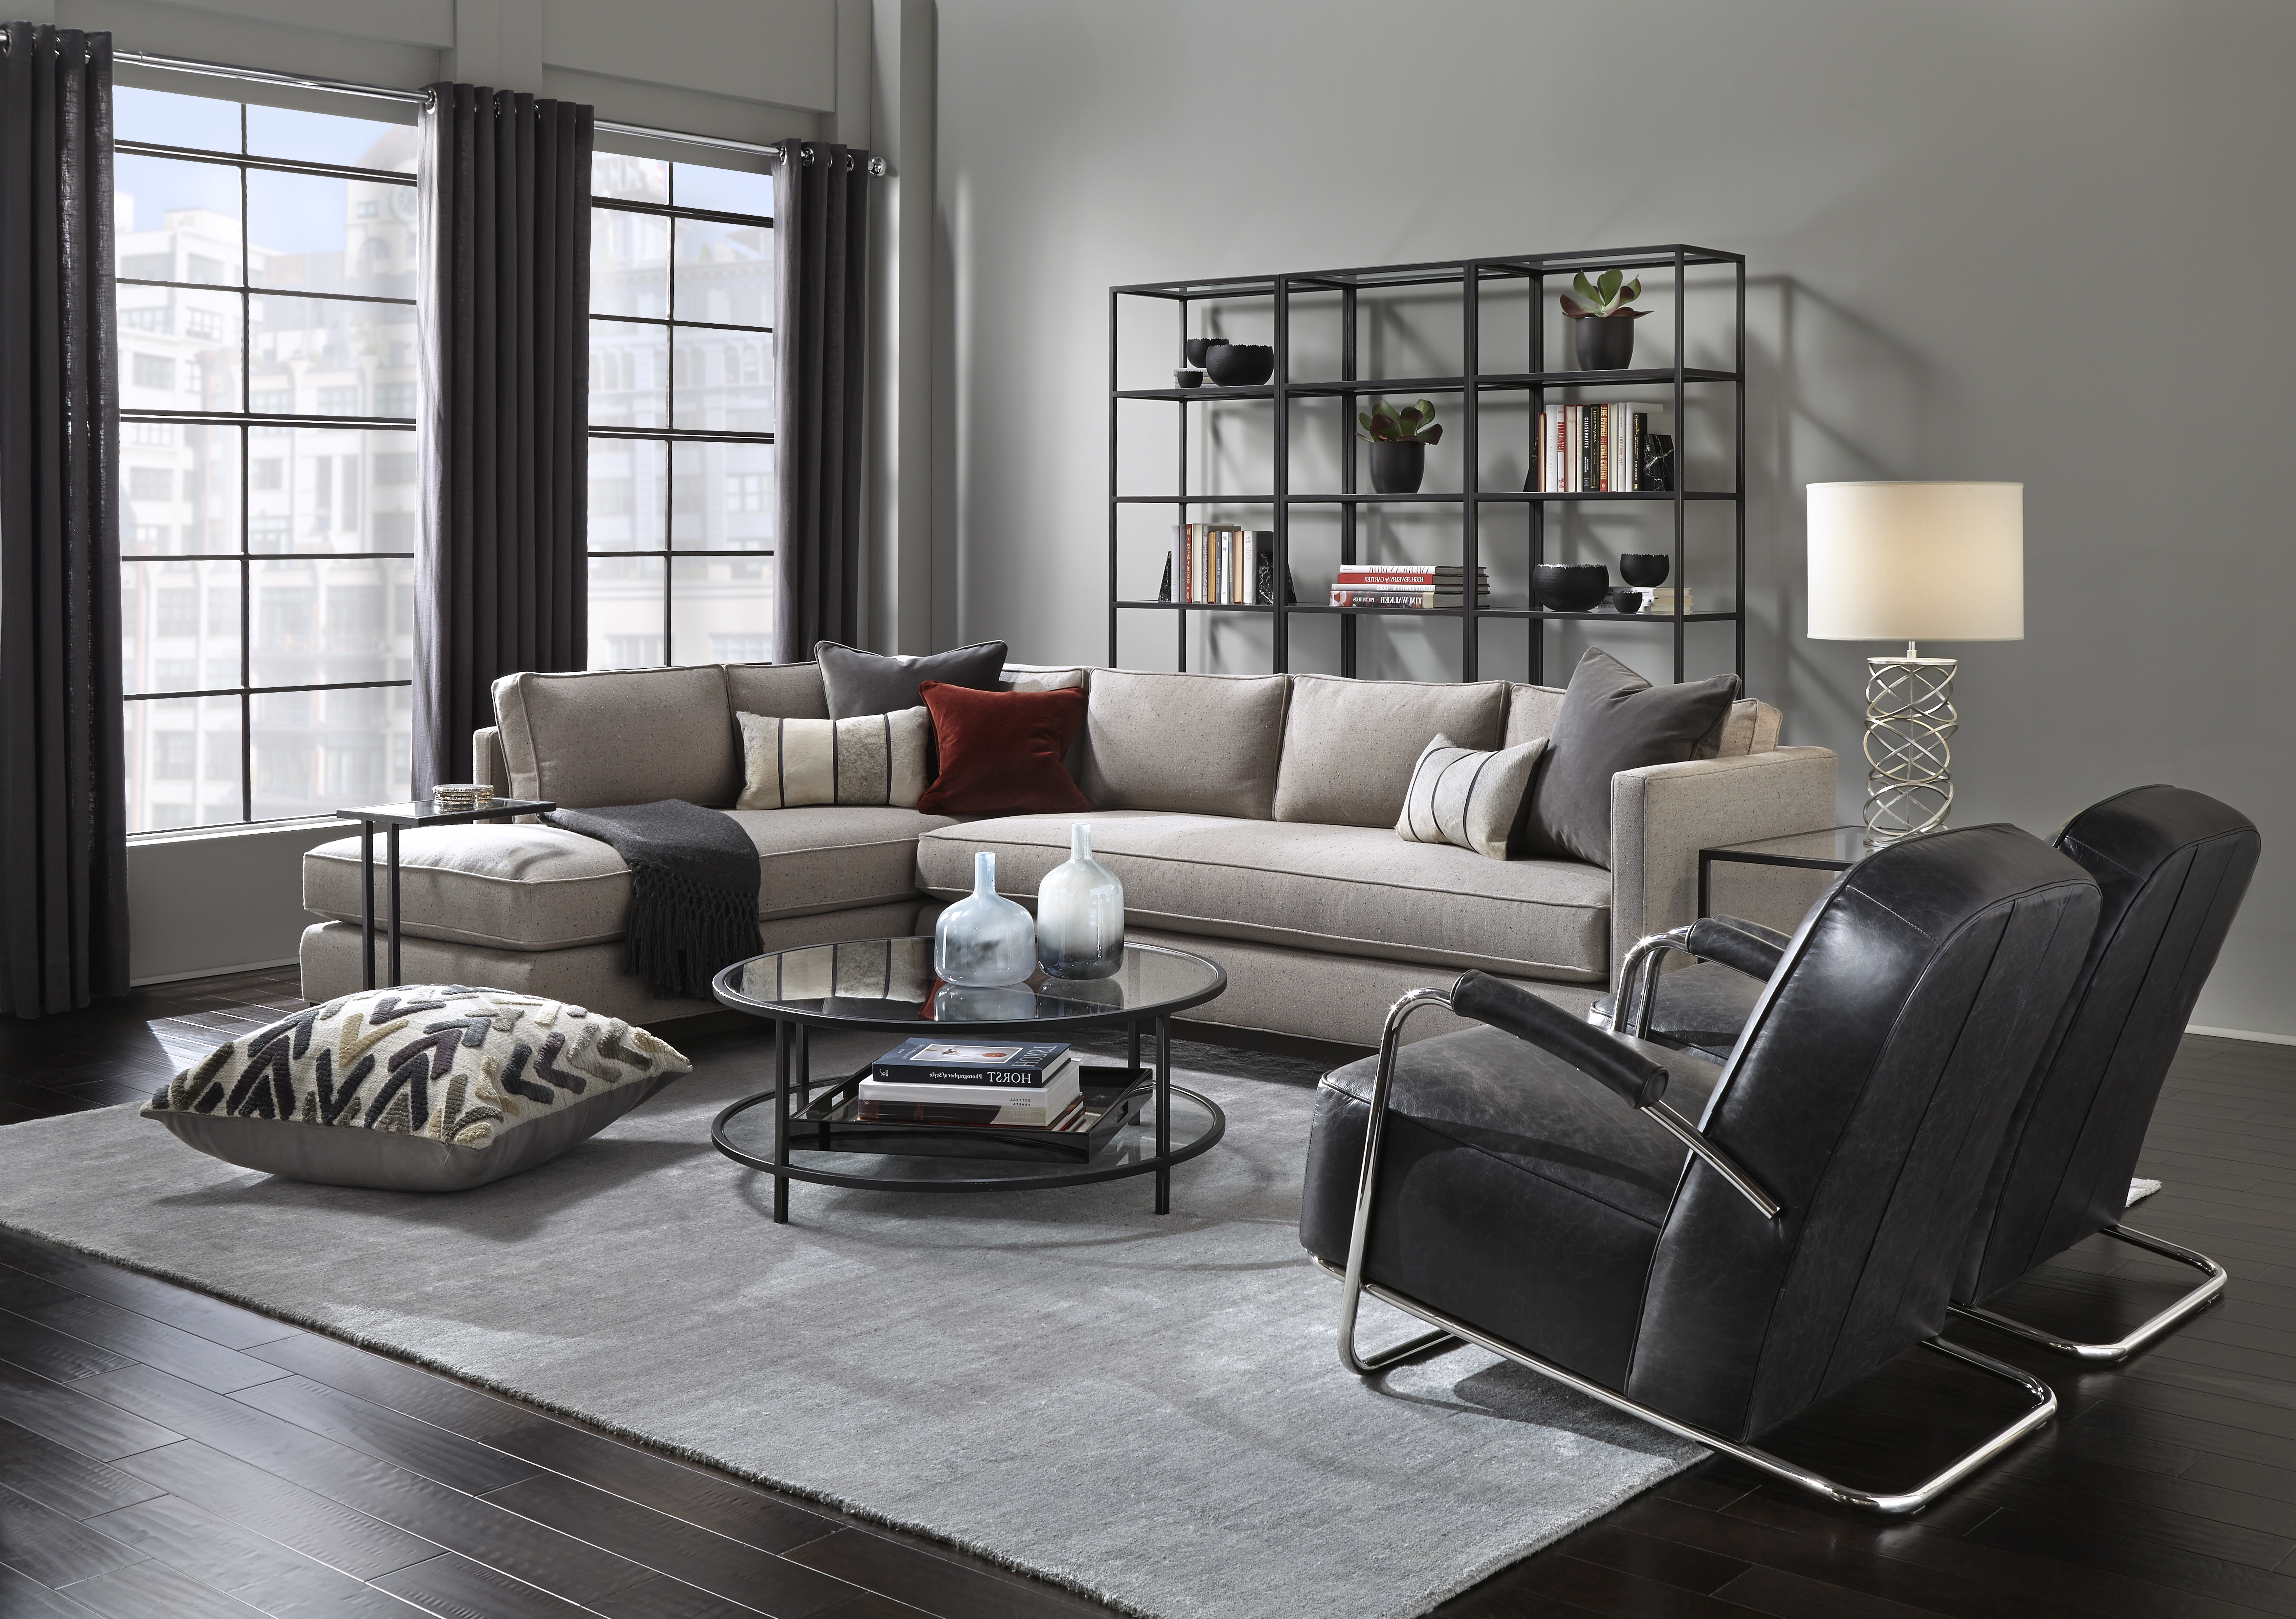 Popular 12 Designer Picked Sofas For Every Budget, And People With Pets Regarding Restoration Hardware Sectional Sofas (View 8 of 20)